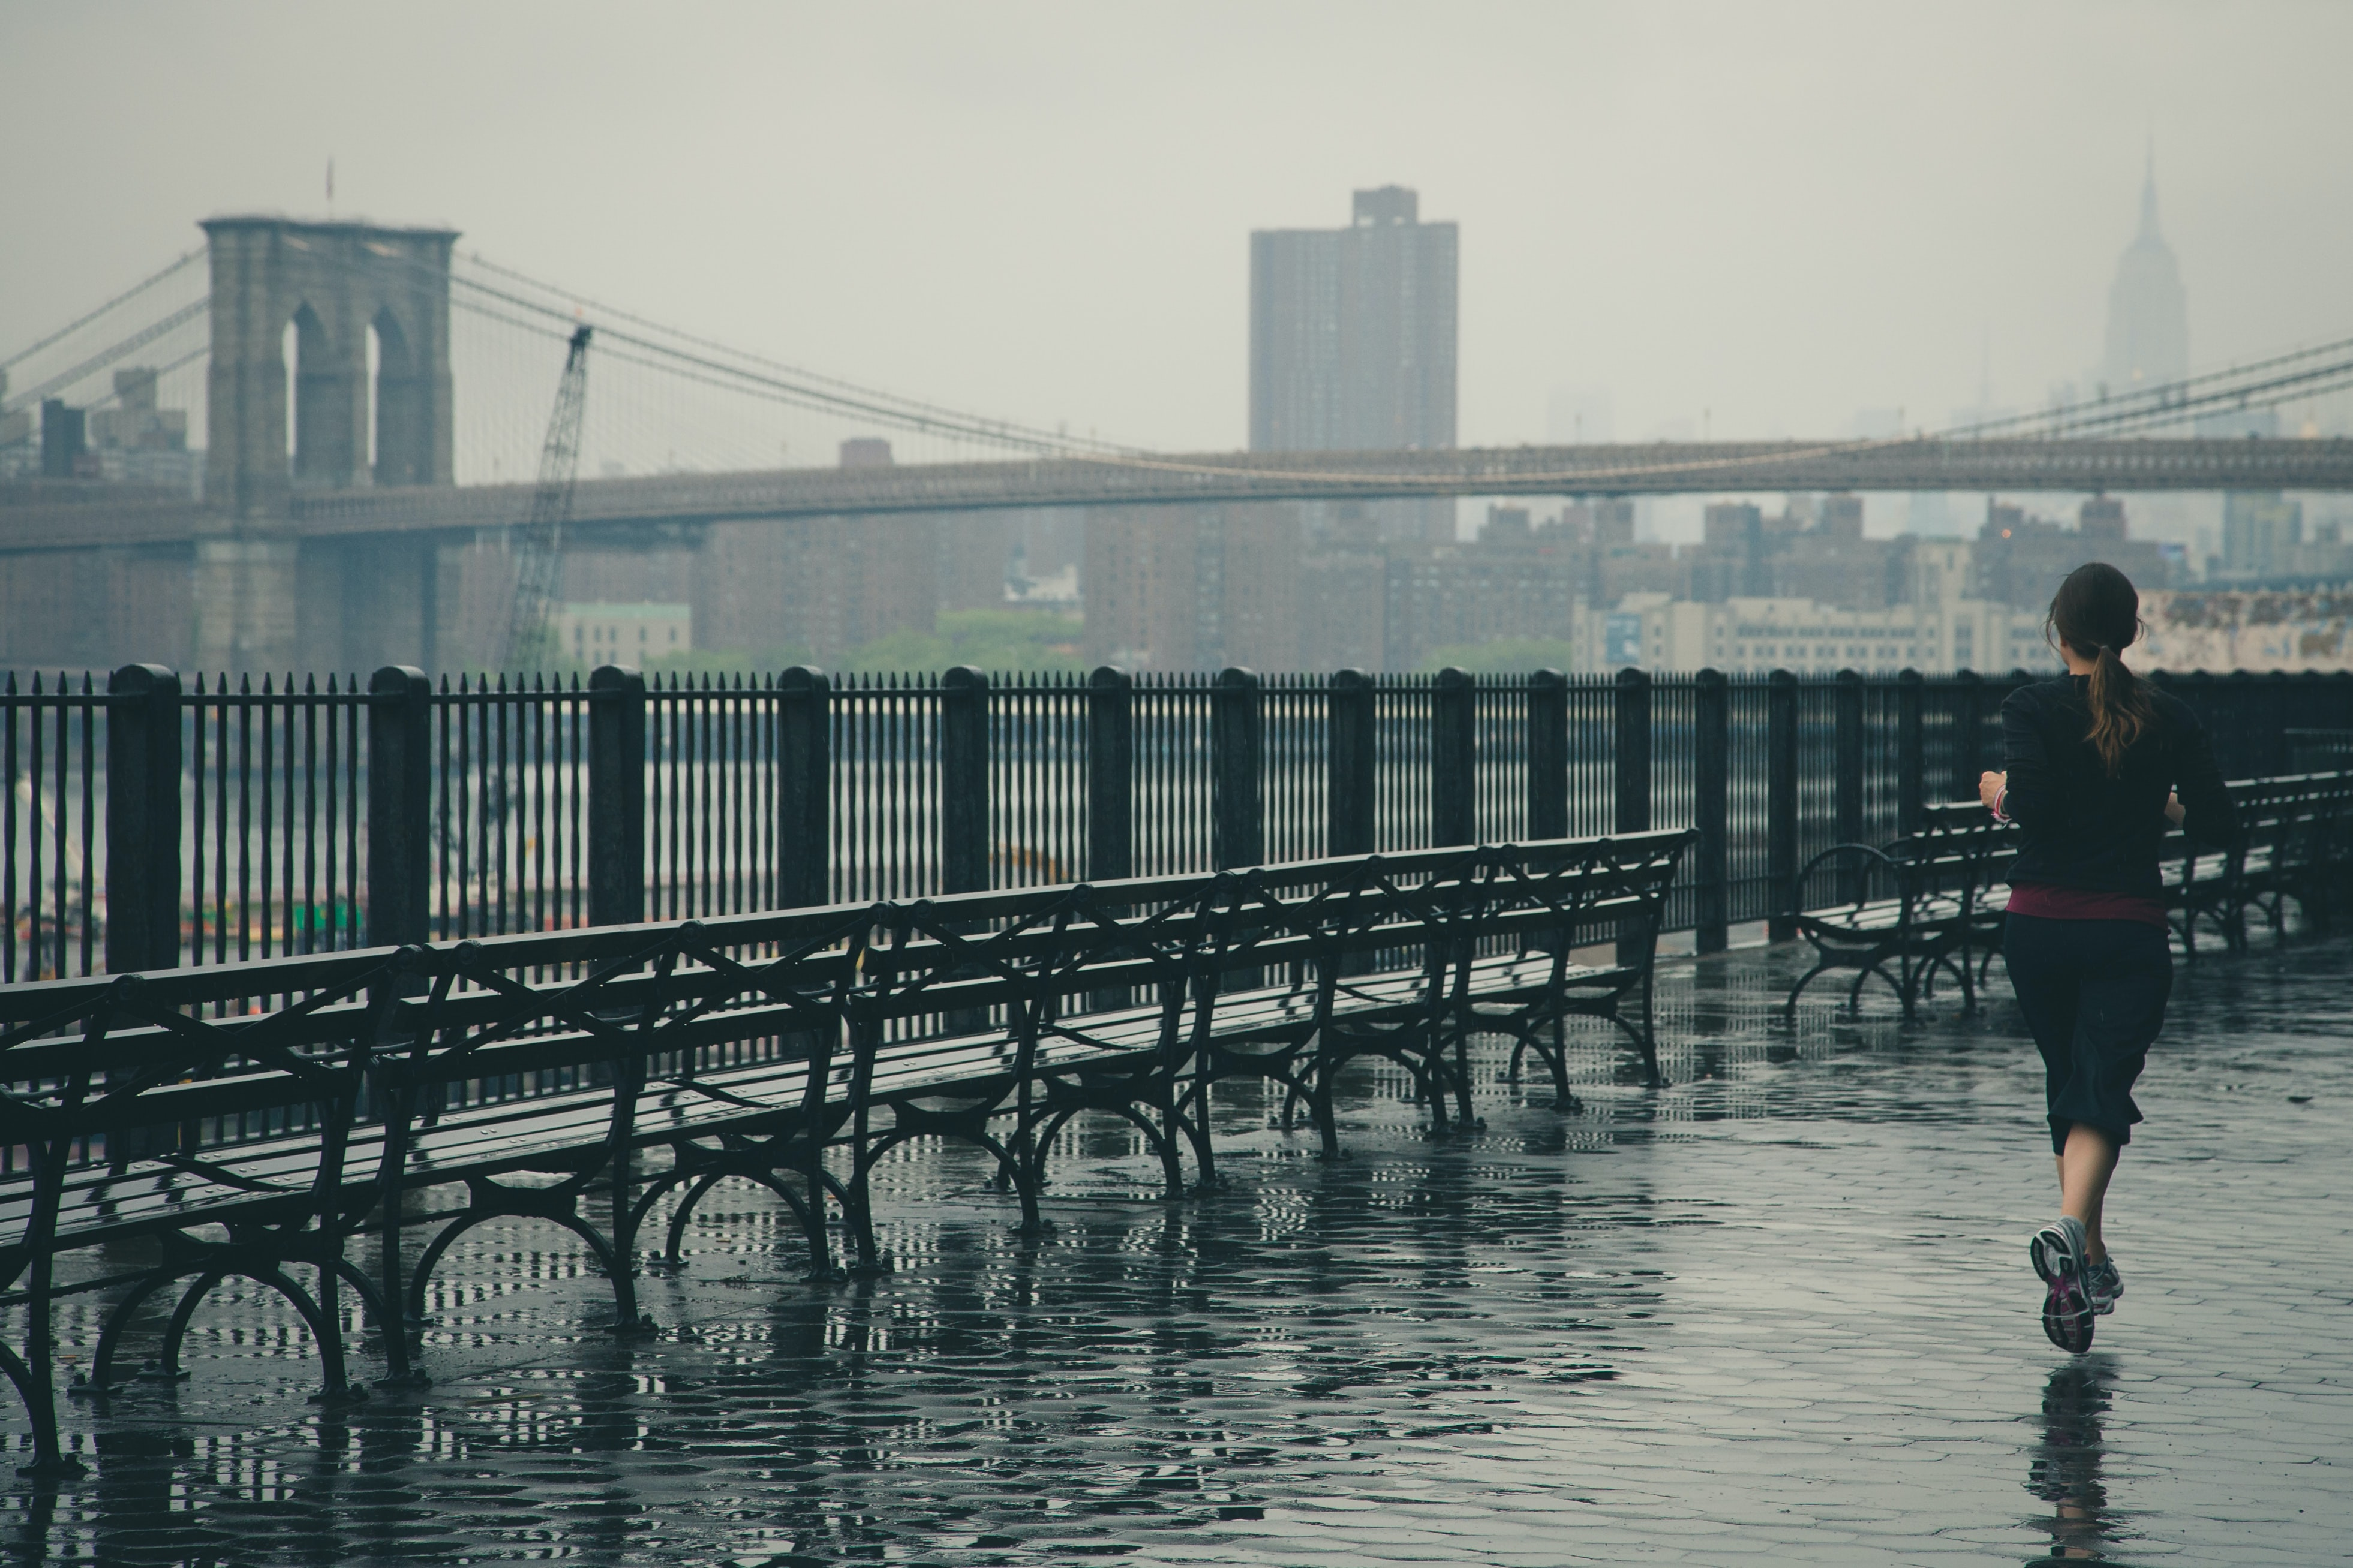 woman running near the body of water with Brooklyn Bridge in the background